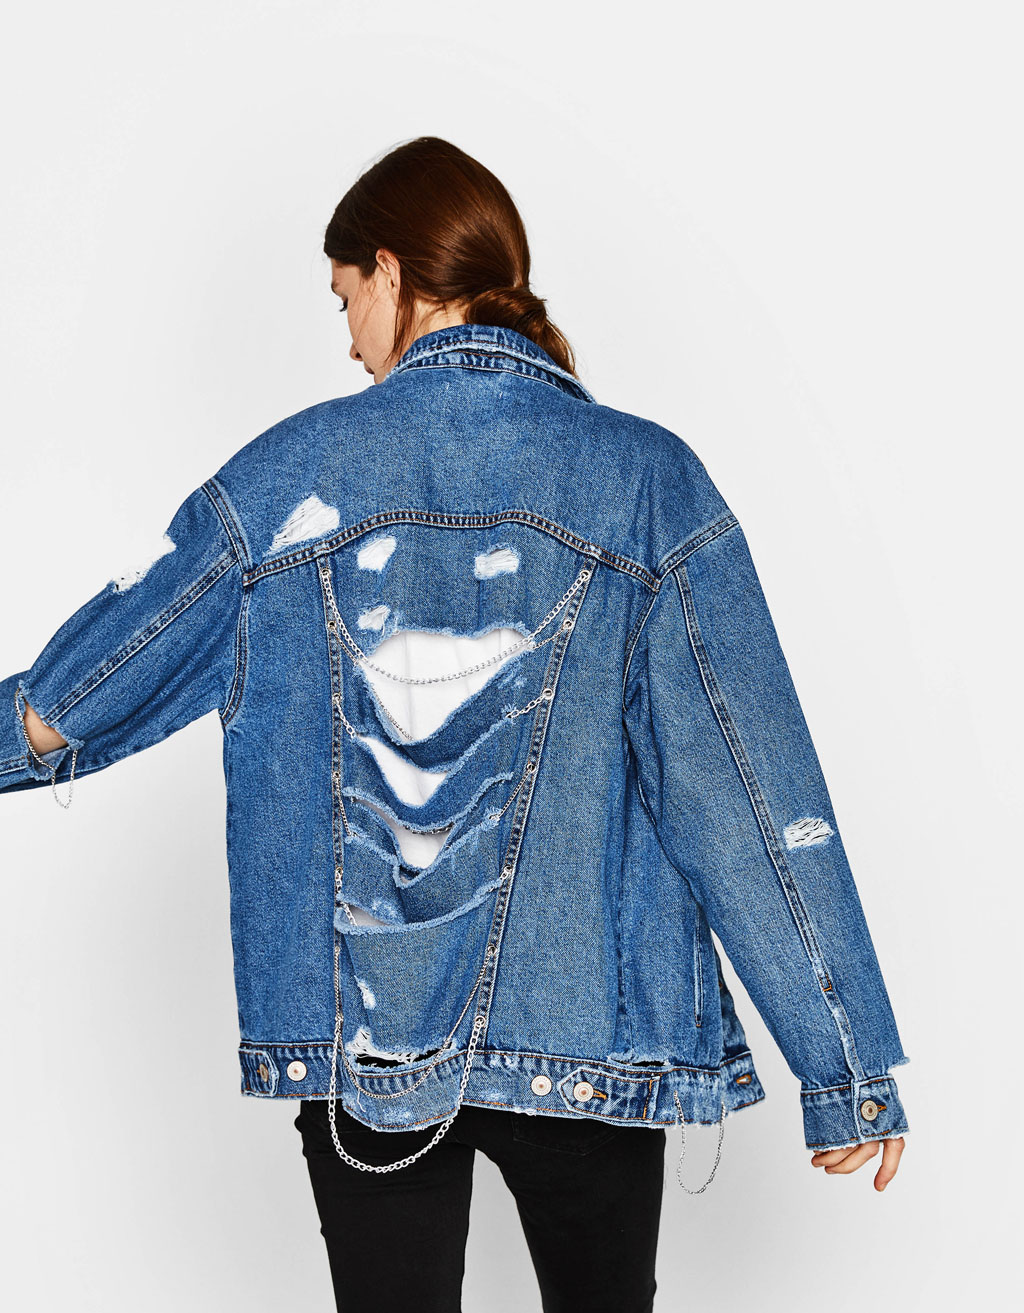 Oversized denim jacket with chains